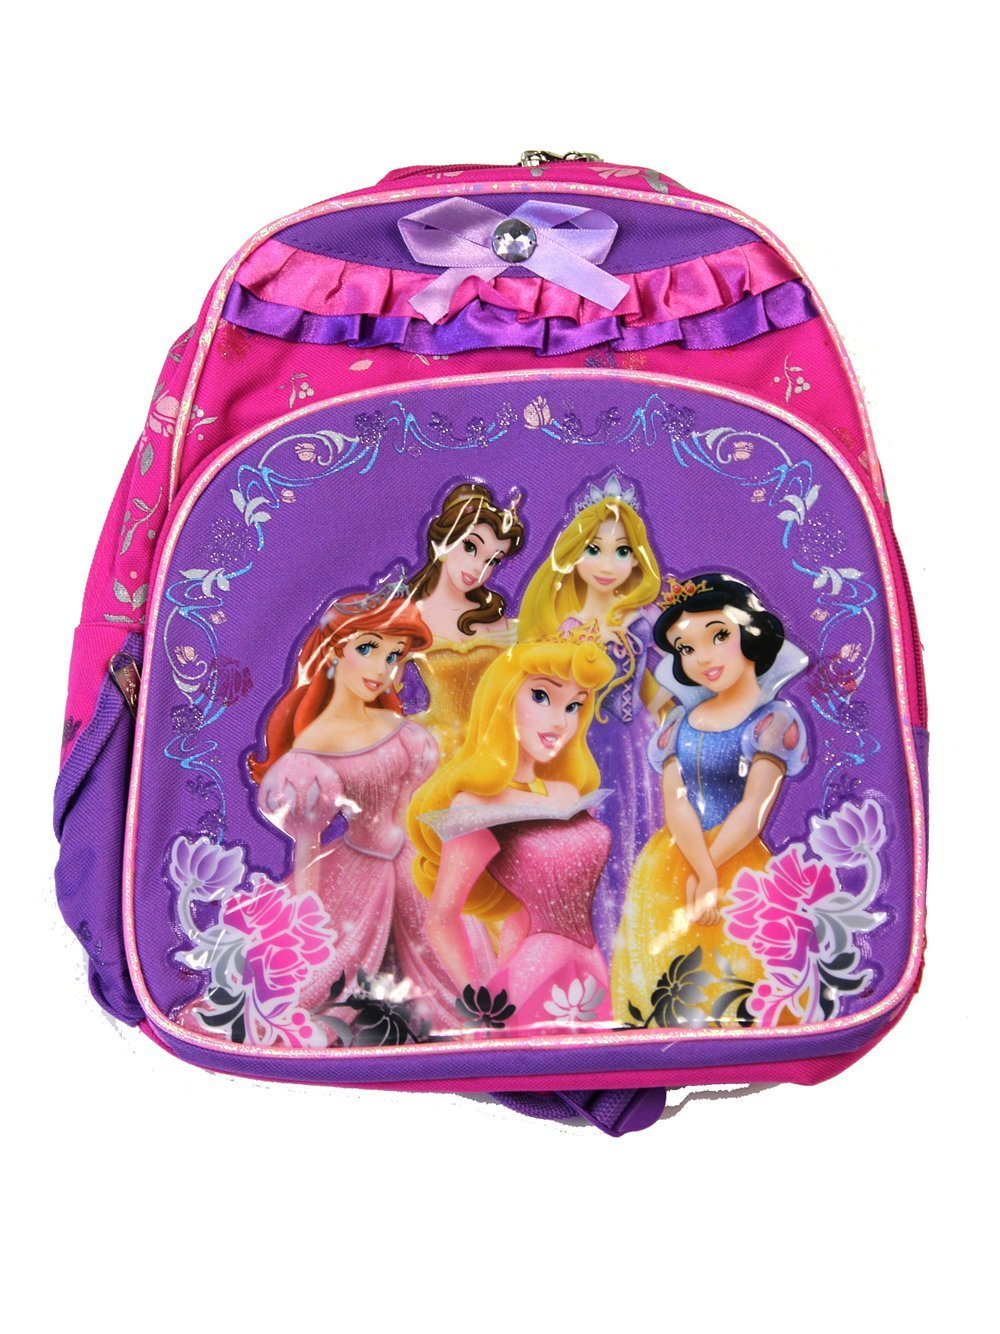 Small Size Pink and Purple Disney Princess Backpack  Disney Princess Bookbag